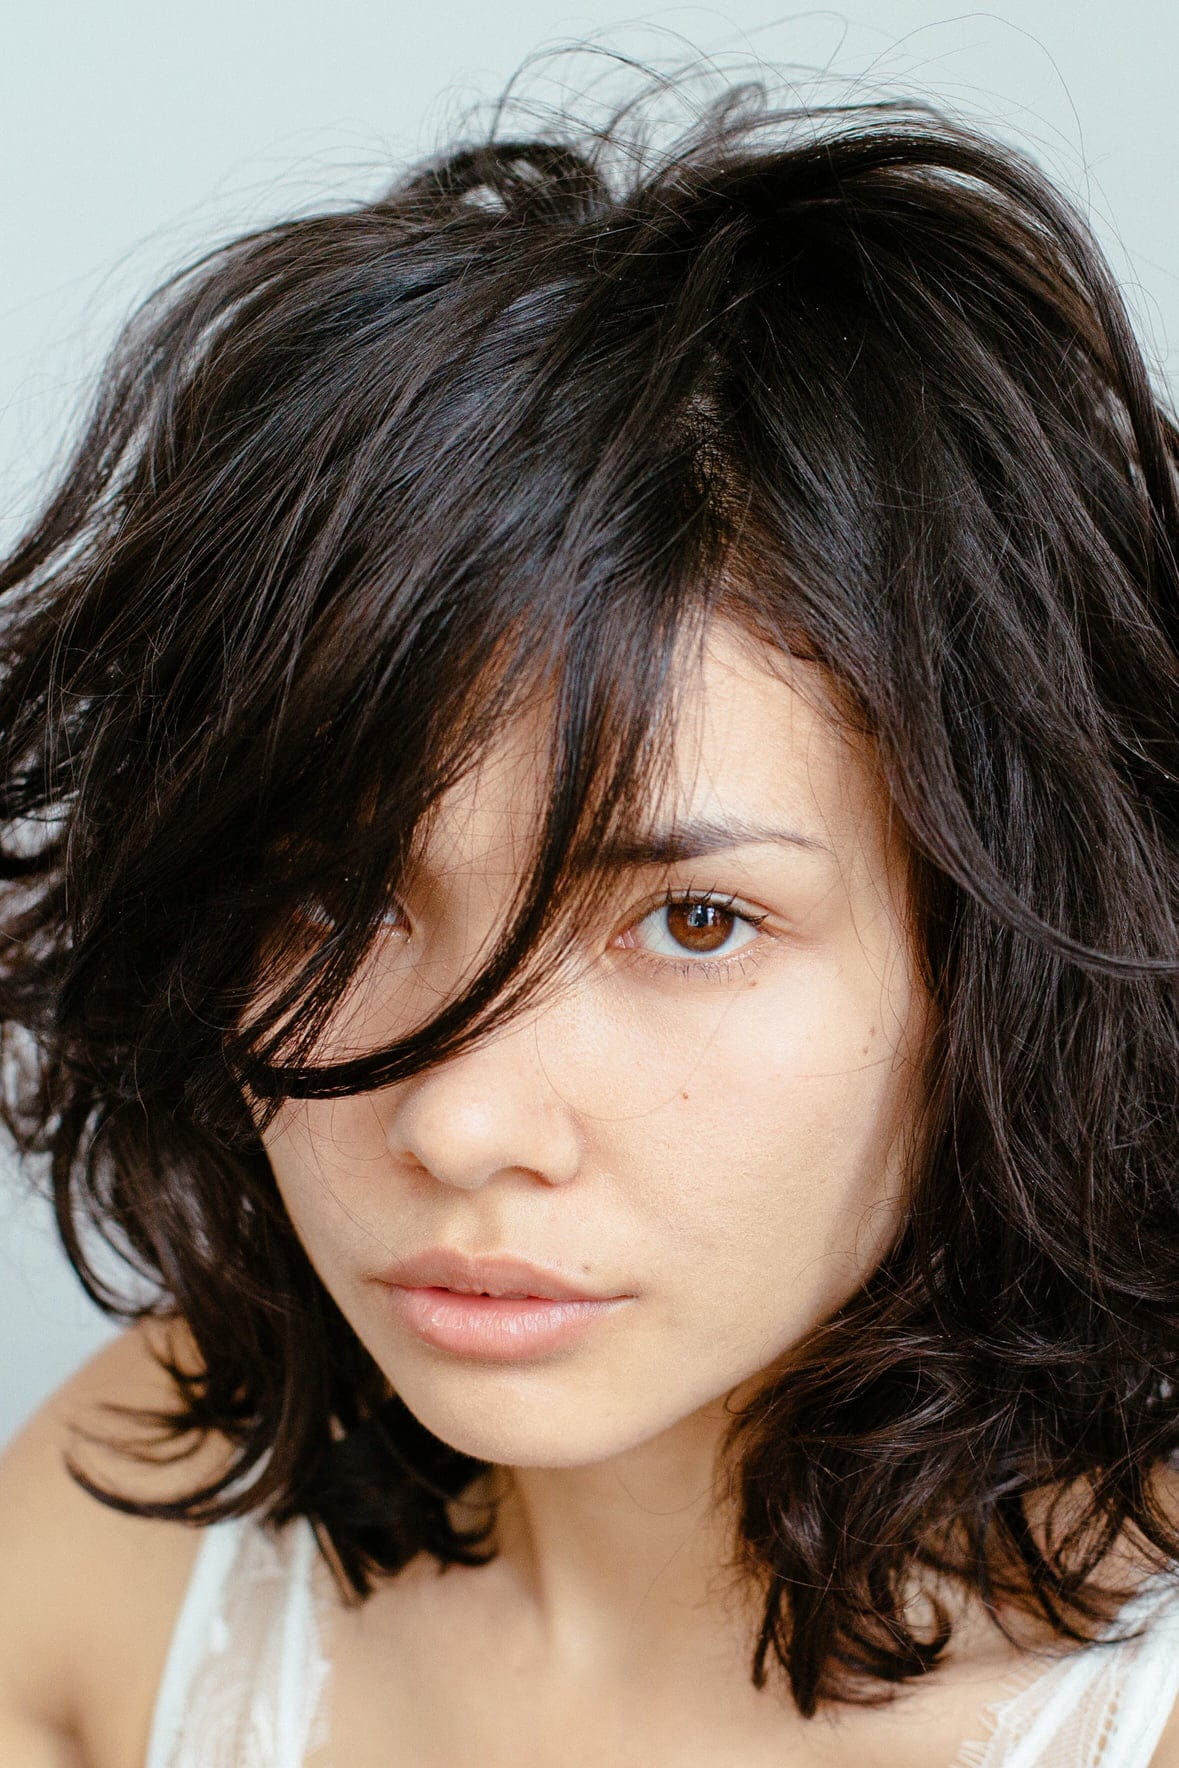 Growing Out Hair Tips To Make Hair Grow Faster Hairstory